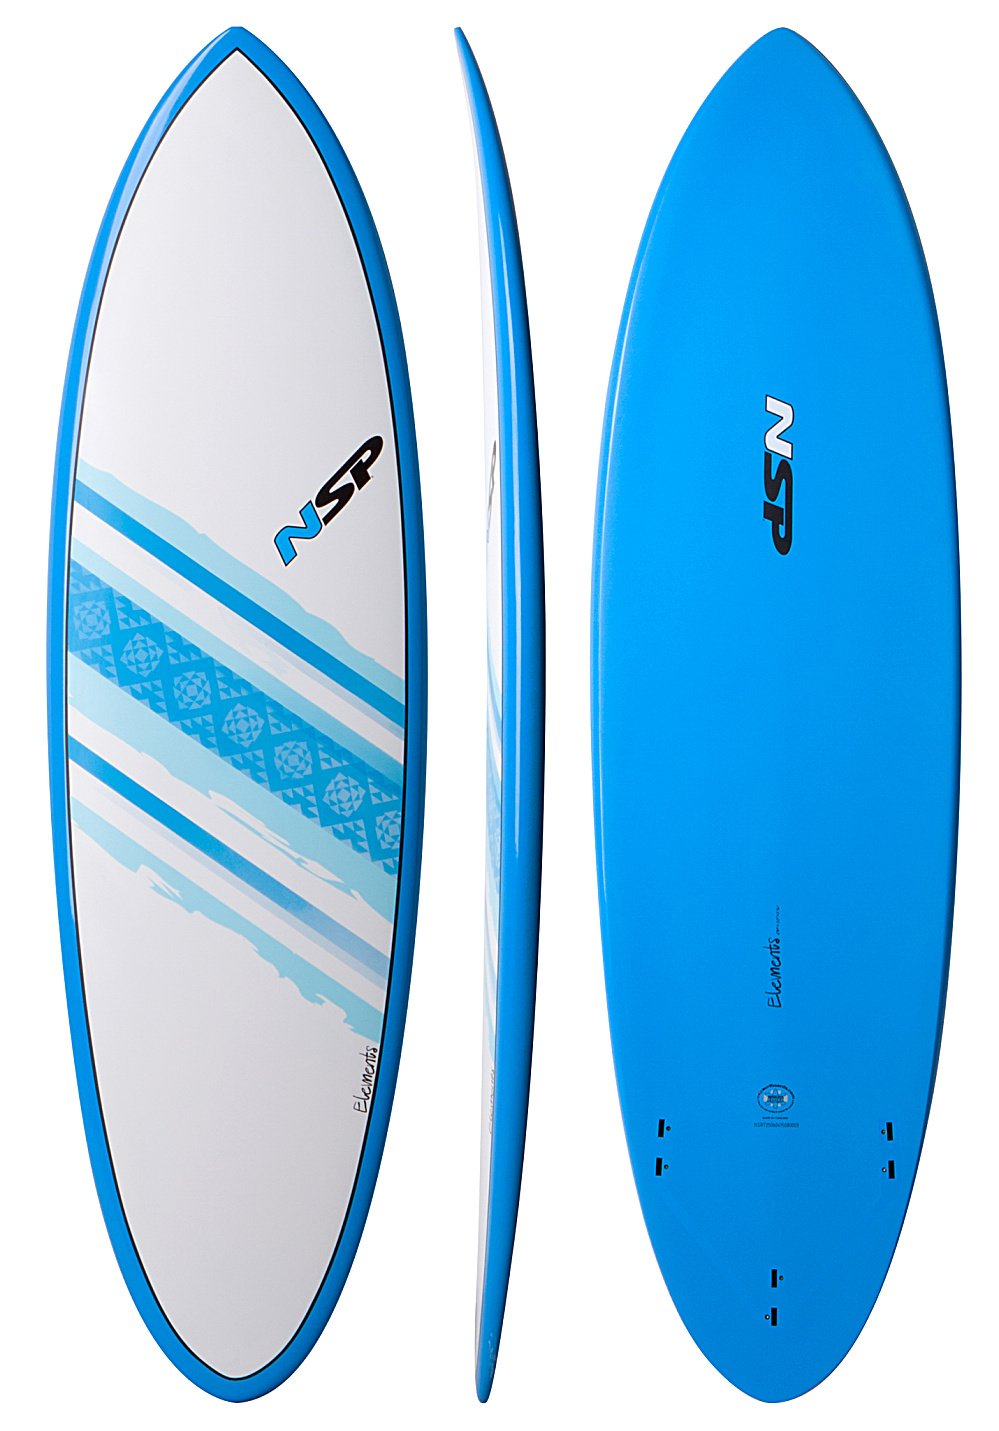 NSP Element Hybrid Short Tabla de Surf, azul: Amazon.es: Deportes y aire libre